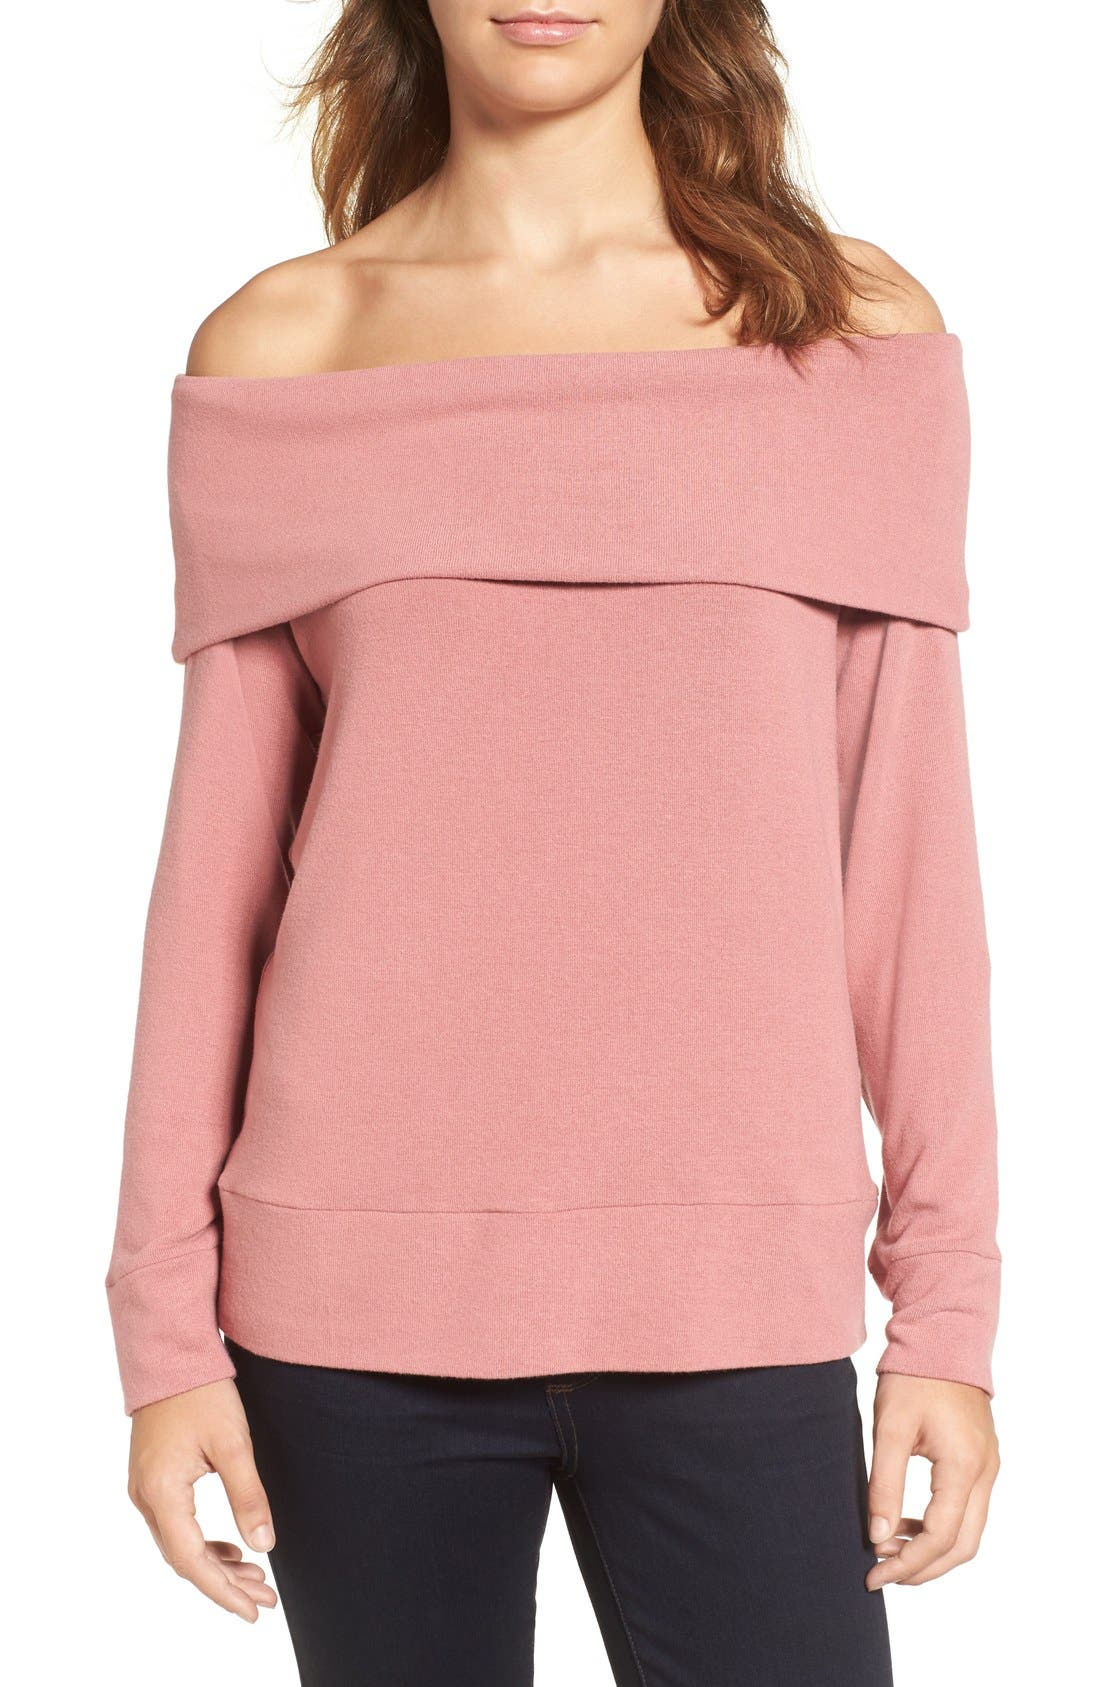 cupcakes and cashmere 'Brooklyn' Off the Shoulder Top